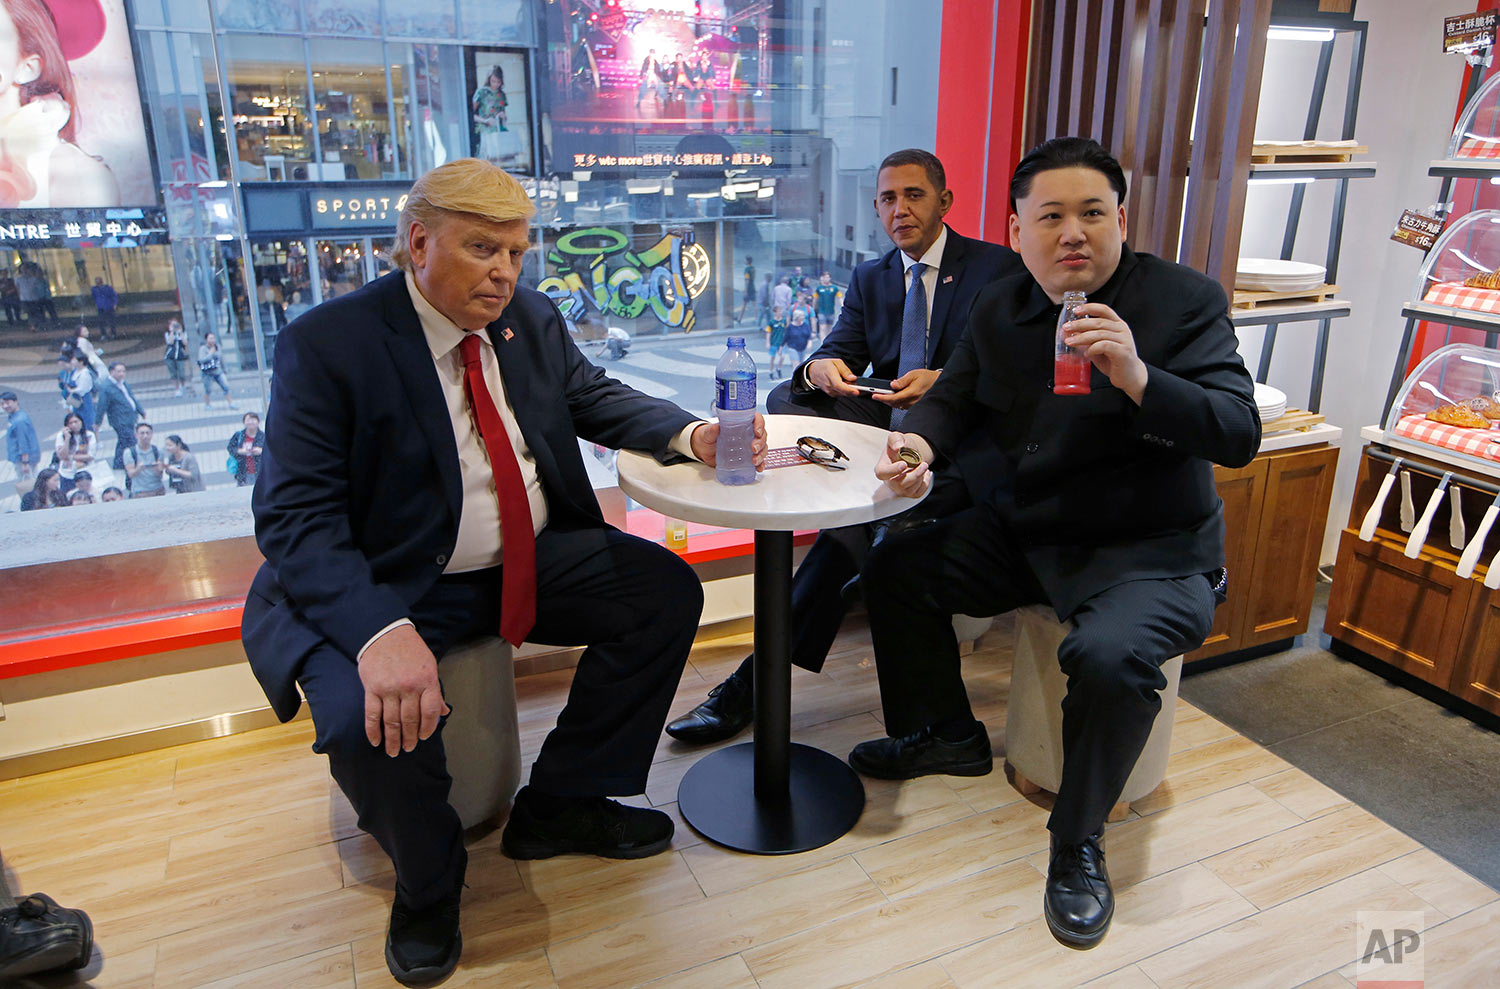 North Korean leader Kim Jong Un, former U.S. President Barack Obama and U.S. President Donald Trump impersonators, from right, Howard, Reggie Brown and Dennis Alan, take rest at a cafe as they promote the Hong Kong Rugby Sevens in Hong Kong, Friday, April 7, 2017.  (AP Photo/Kin Cheung)